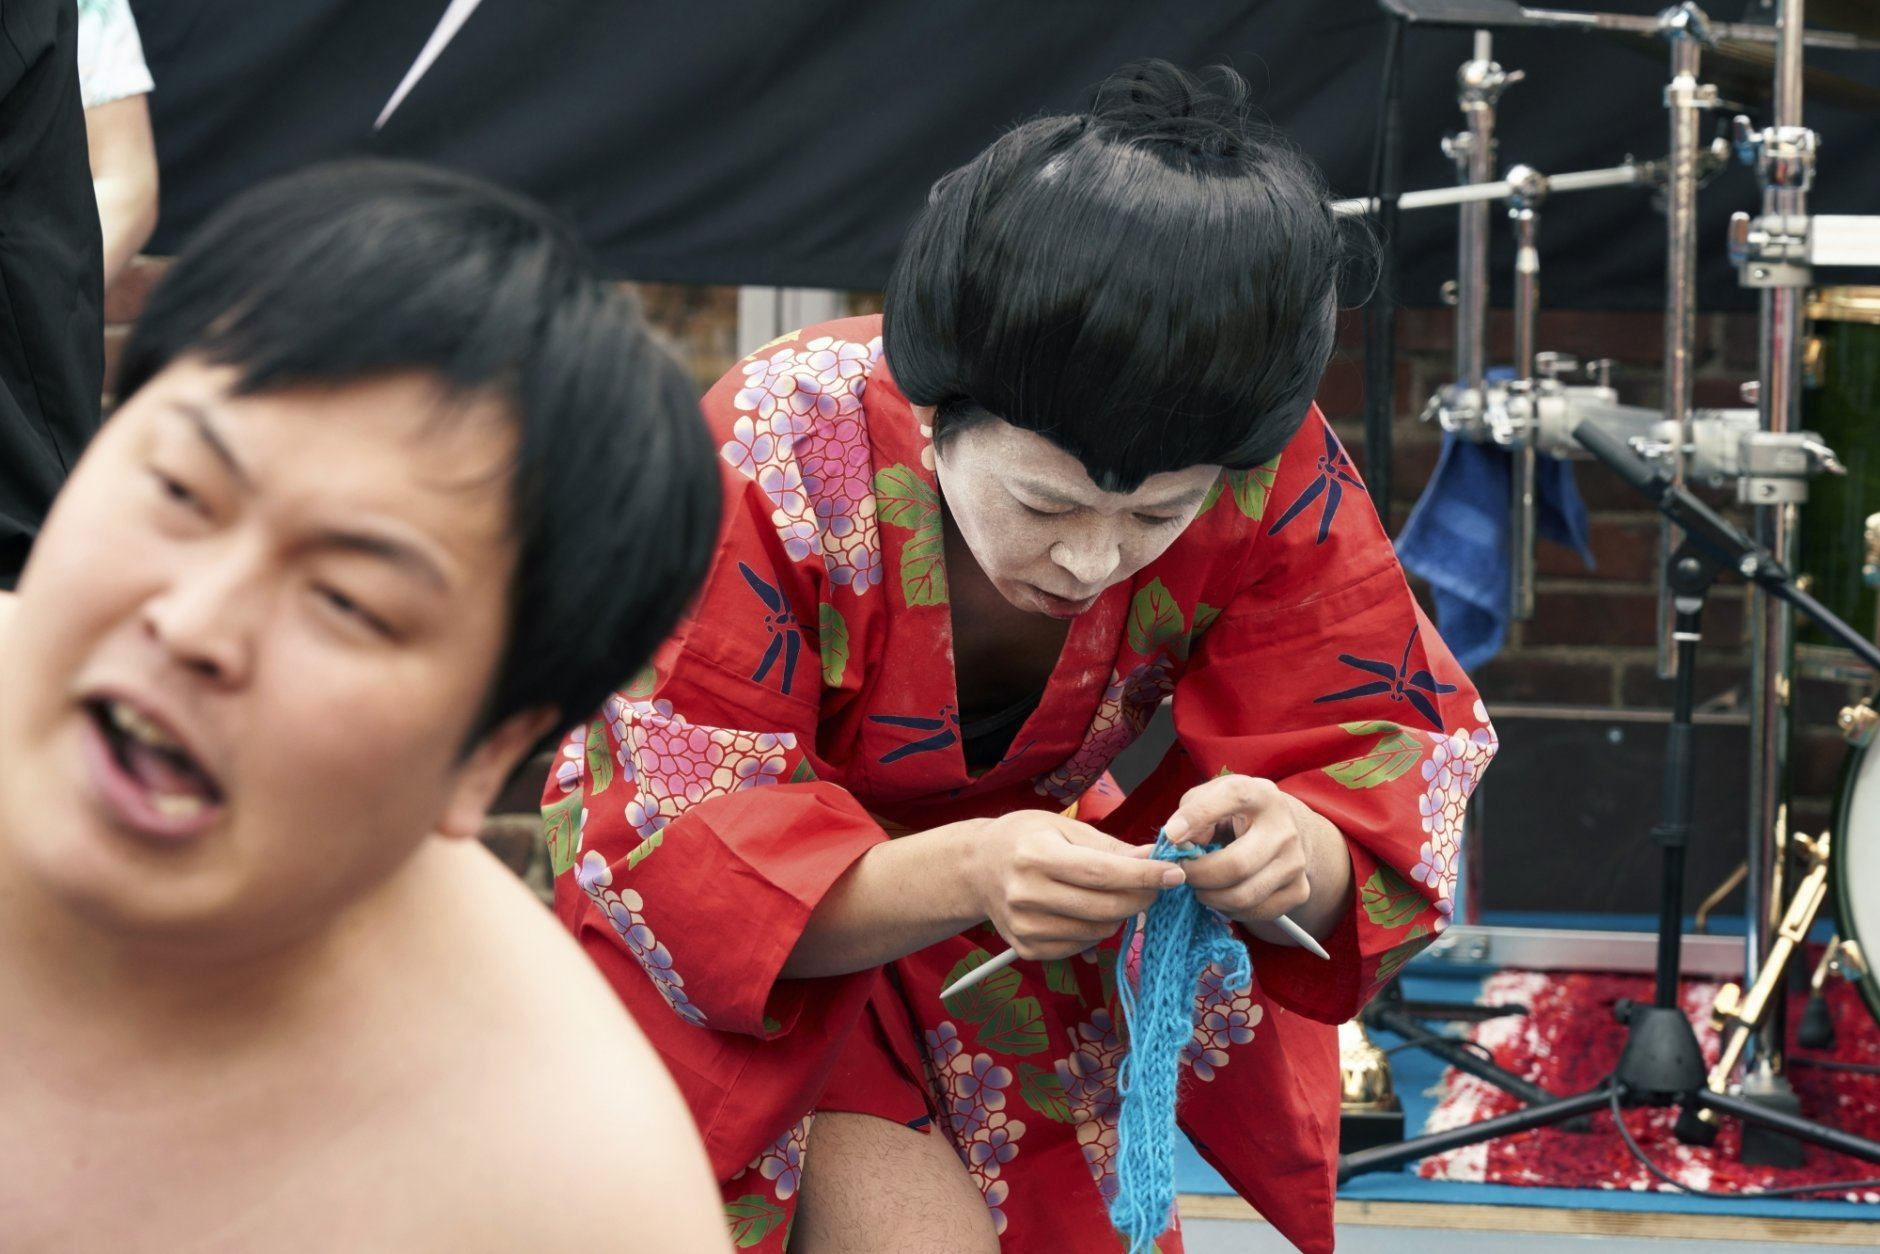 """The Japanese team Giga Body Metal perform in the Heavy Metal Knitting world champions with a show featuring crazy sumo wrestlers and team leader Manabu Kaneko dressed in a traditional Japanese kimono knitting , Thursday, July 11, 2019 in Joensuu, Finland. With stage names such as 'Woolfumes,' 'Bunny Bandit' and '9"""" Needles,' the goal was quite simple: to showcase their knitting skills whilst dancing to heavy metal music in the most outlandish way possible. (AP Photo/David Keyton)"""